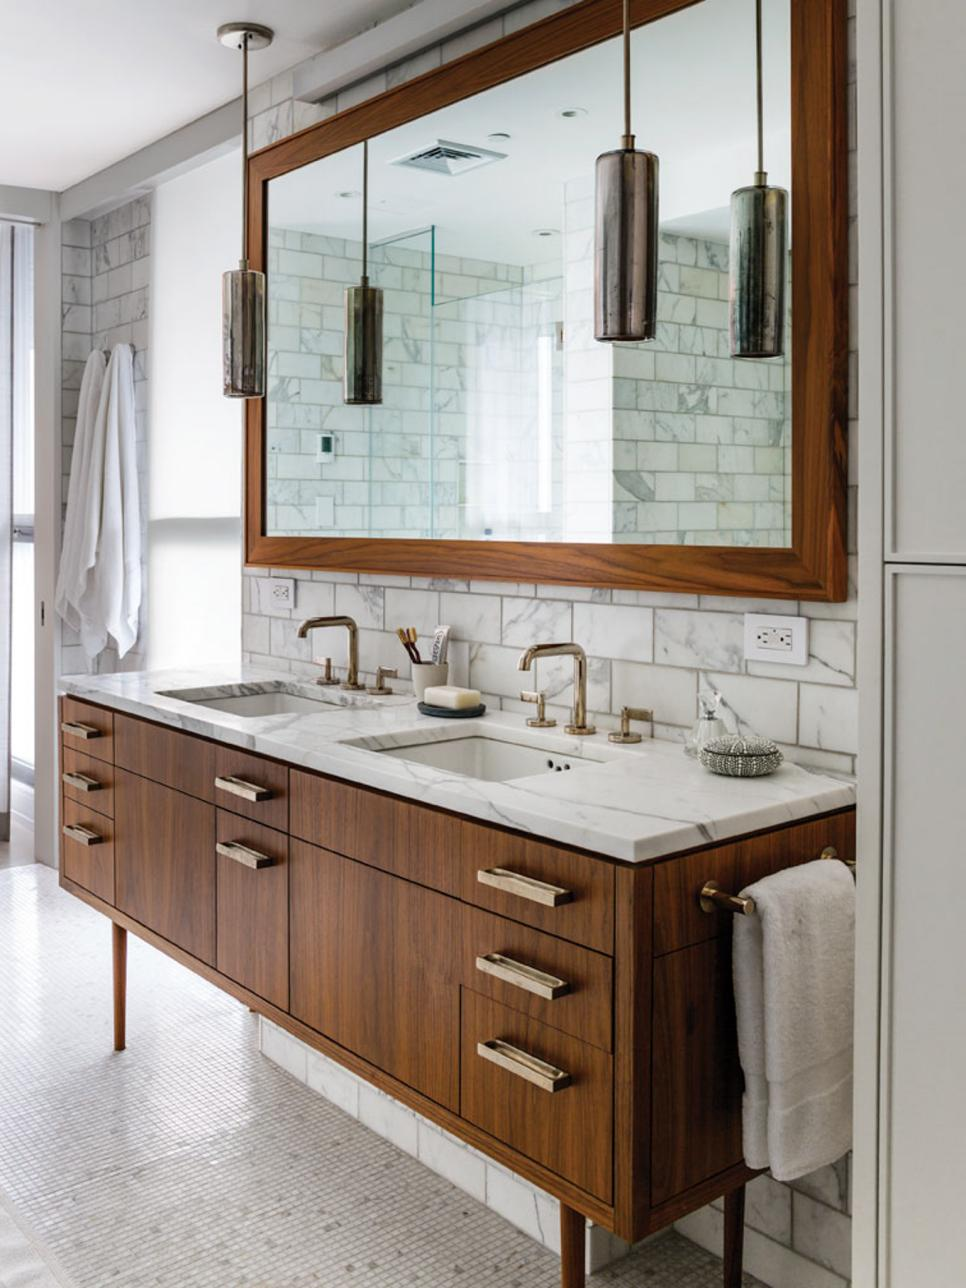 Vanity Designs Simple Bathroom Vanity Styles And Design Ideas  Hgtv Inspiration